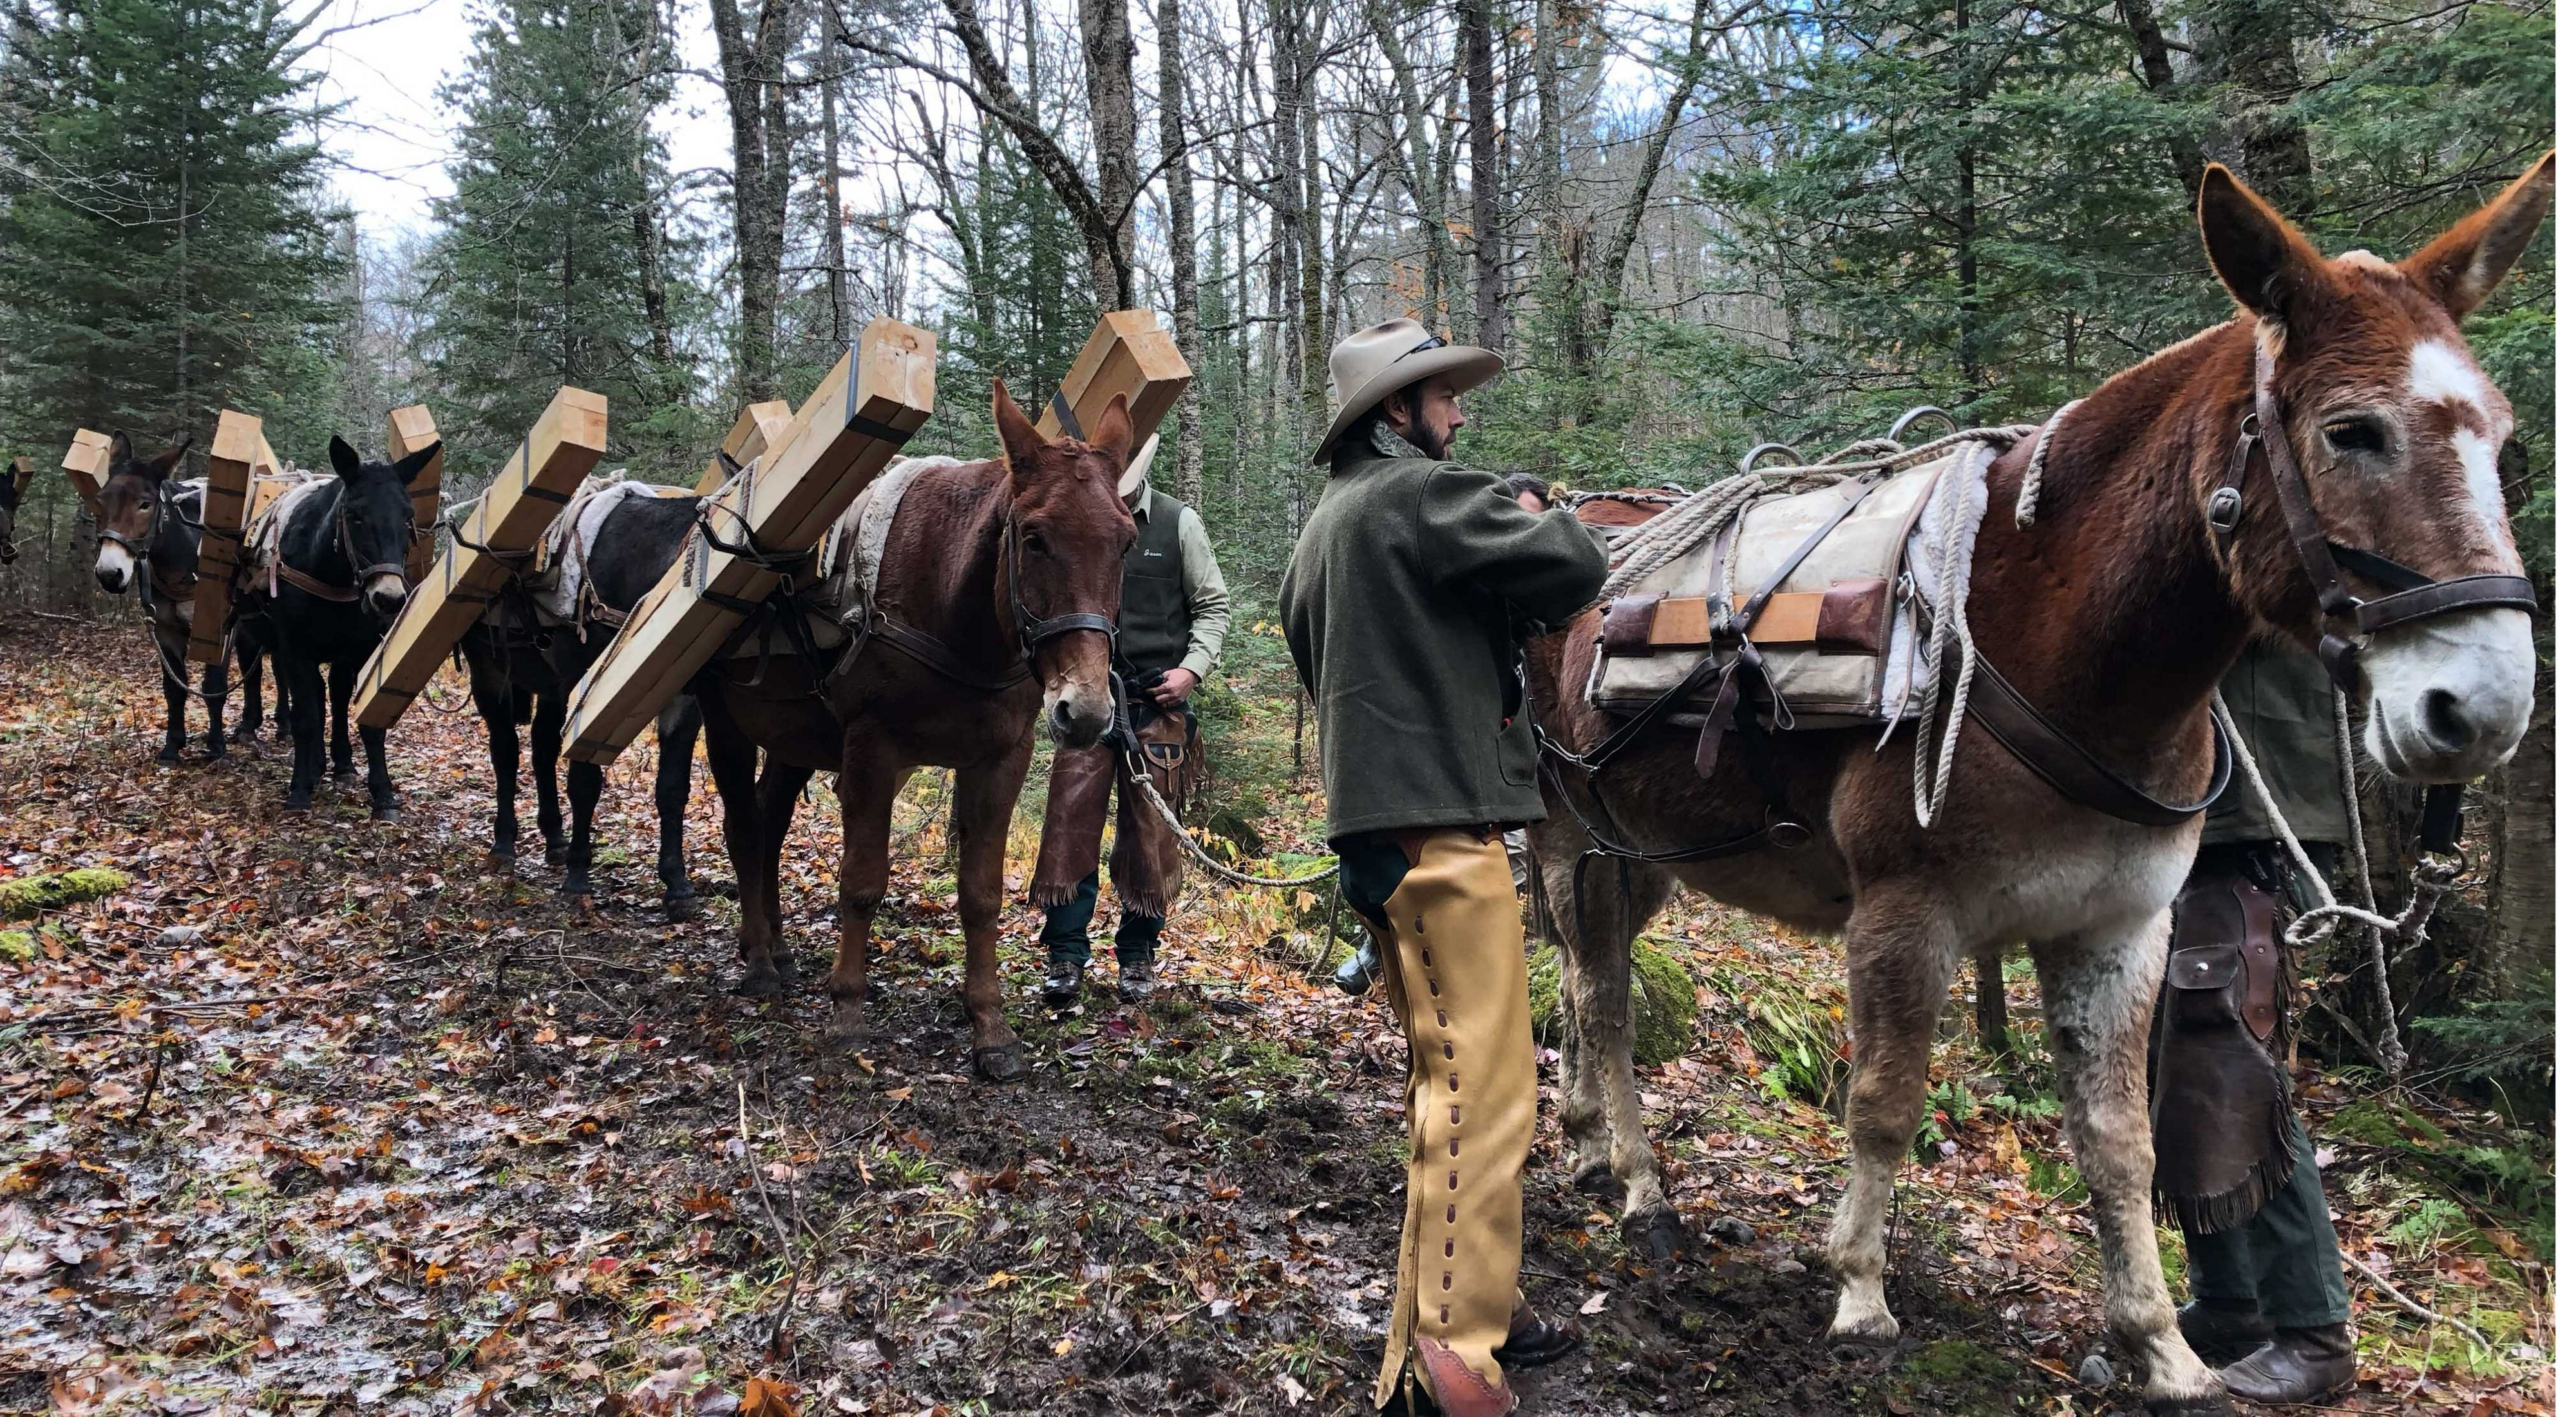 Two U..S. Forest Service pack-strings were utilized to assist with a boardwalk project in Michigan's remote McCormick Wilderness Area.